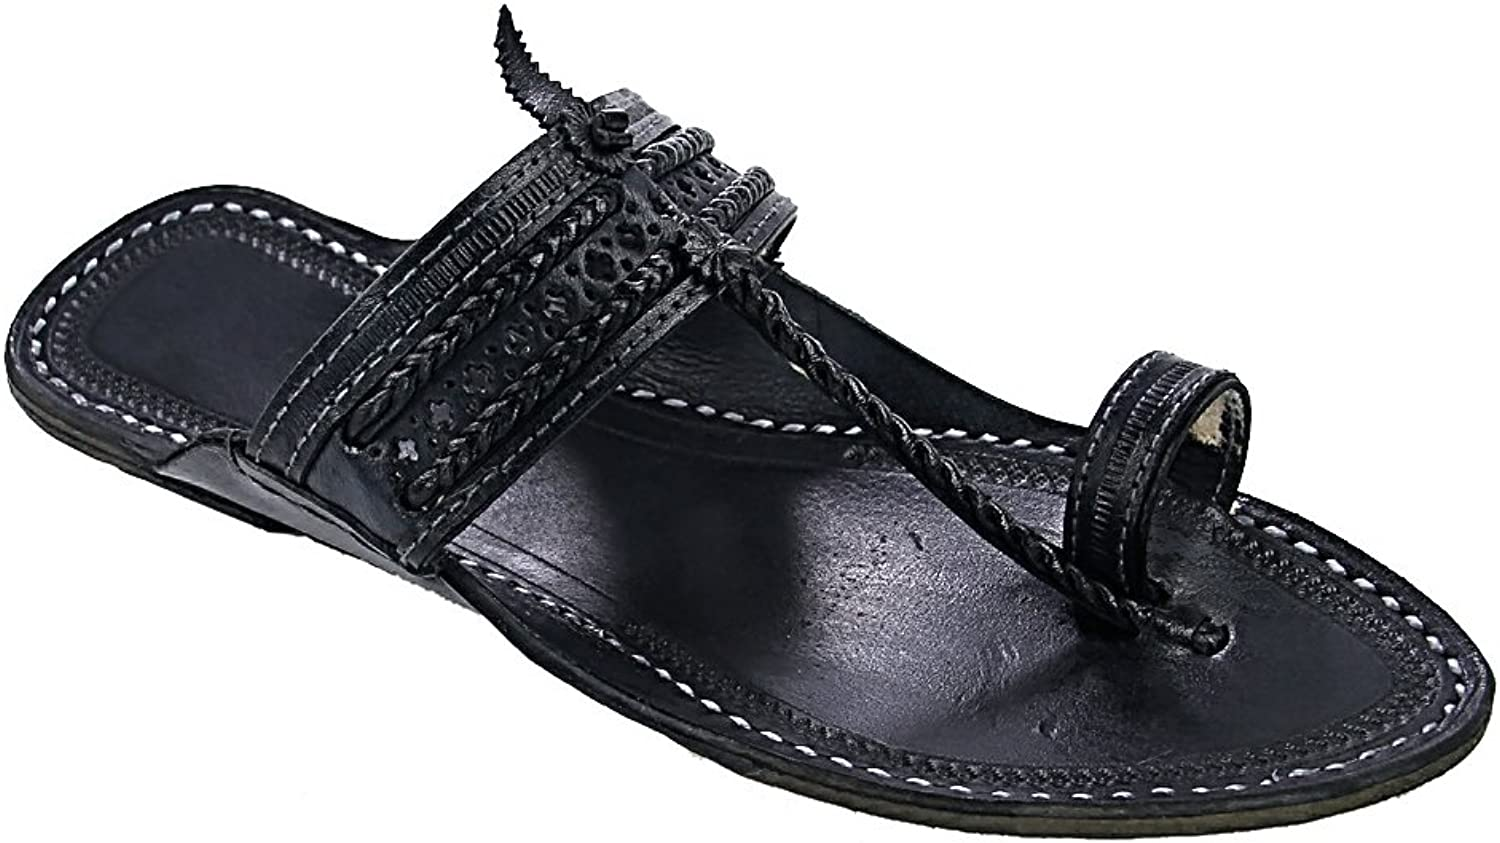 KOLHAPURI CHAPAL Original Annorful Looking svart svart svart Pointed for män Slipper Sandal  mycket populär